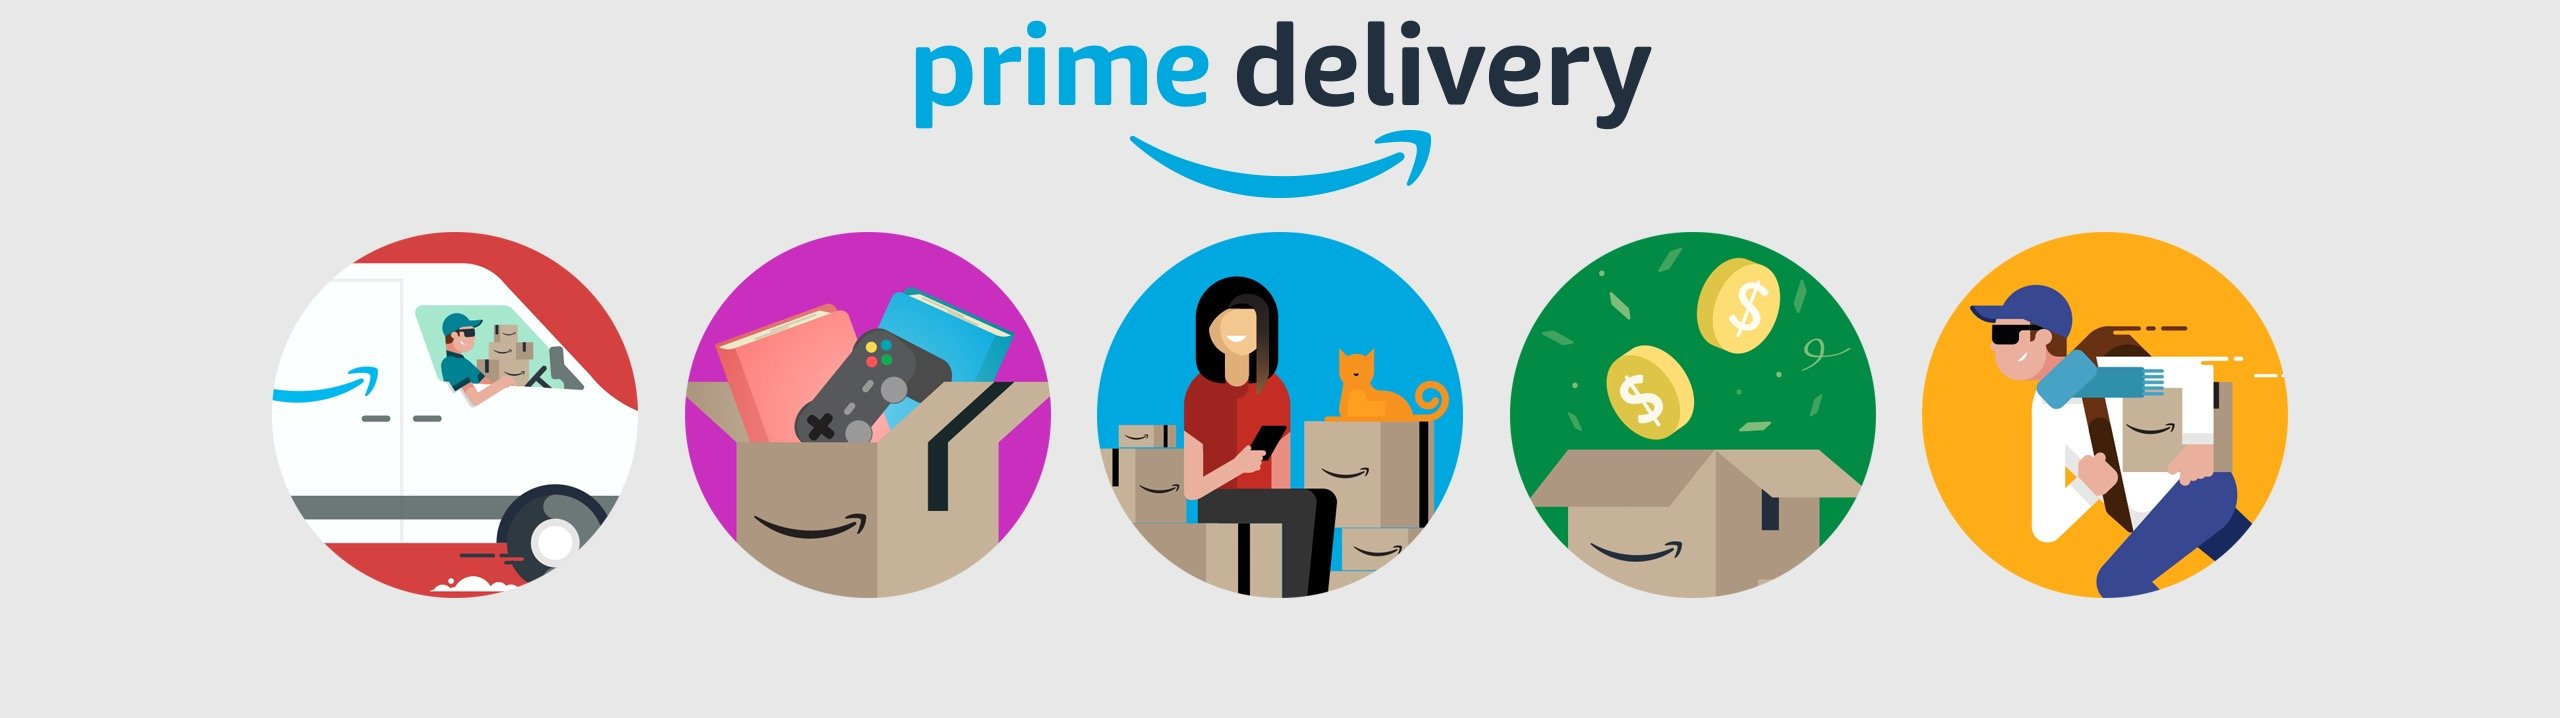 All prime delivery benefits